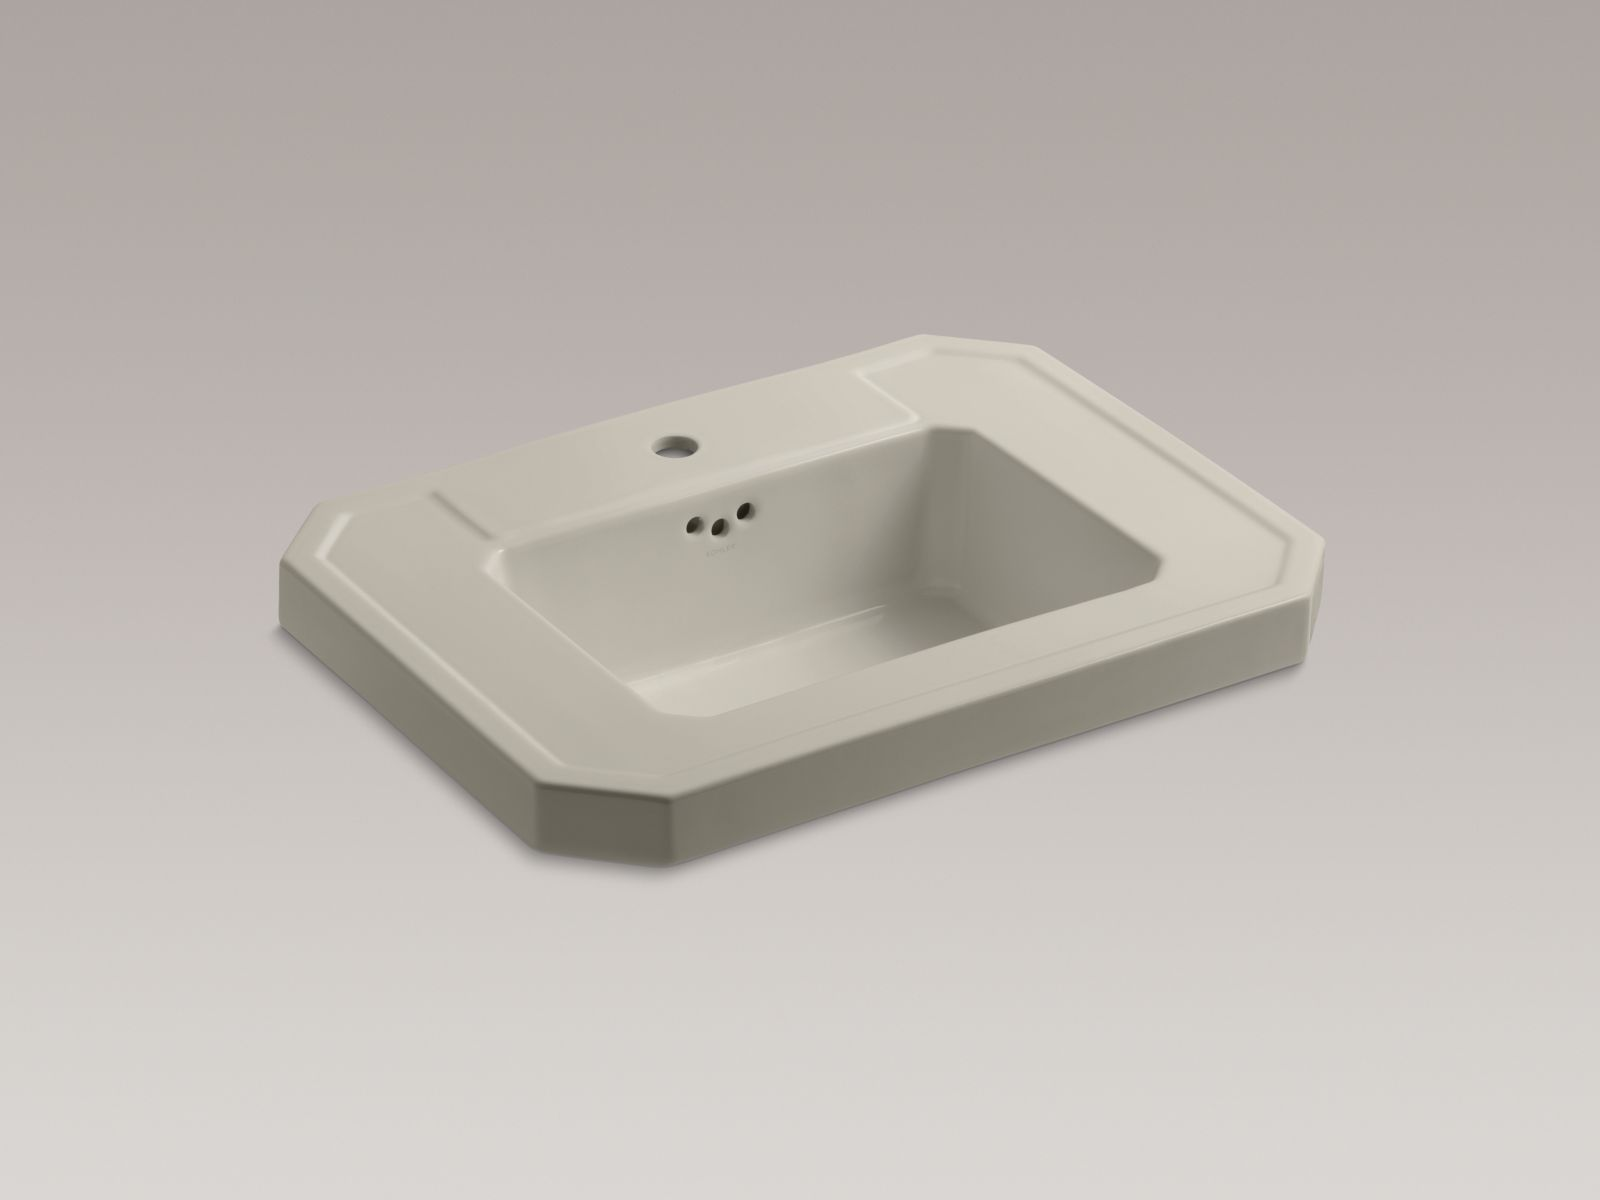 Kohler Kathryn® K-2323-1-G9 Bathroom sink basin with single faucet hole Sandbar